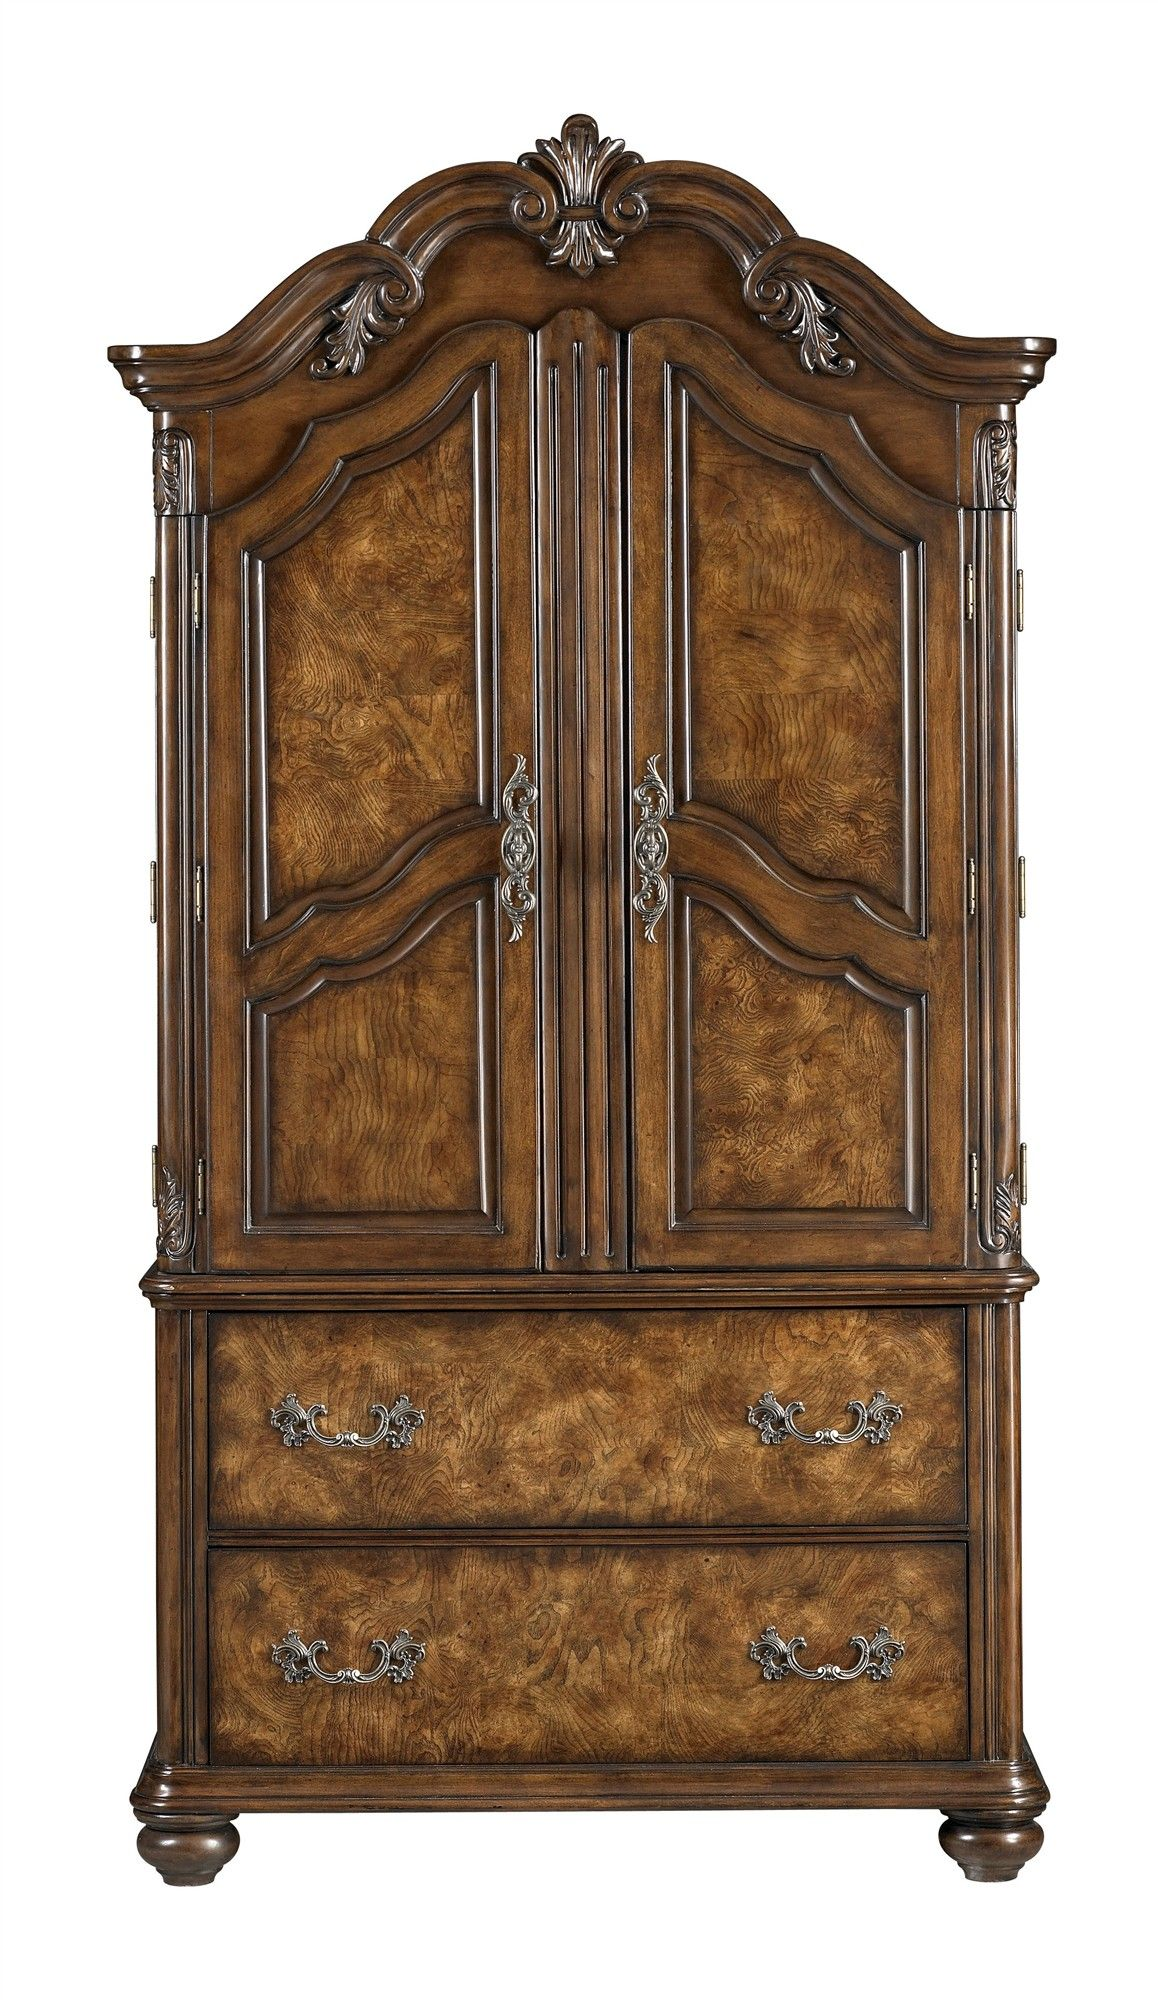 Armoires | Buy Low Price Broyhill Vantana Armoire In Red  Brown (4985 245